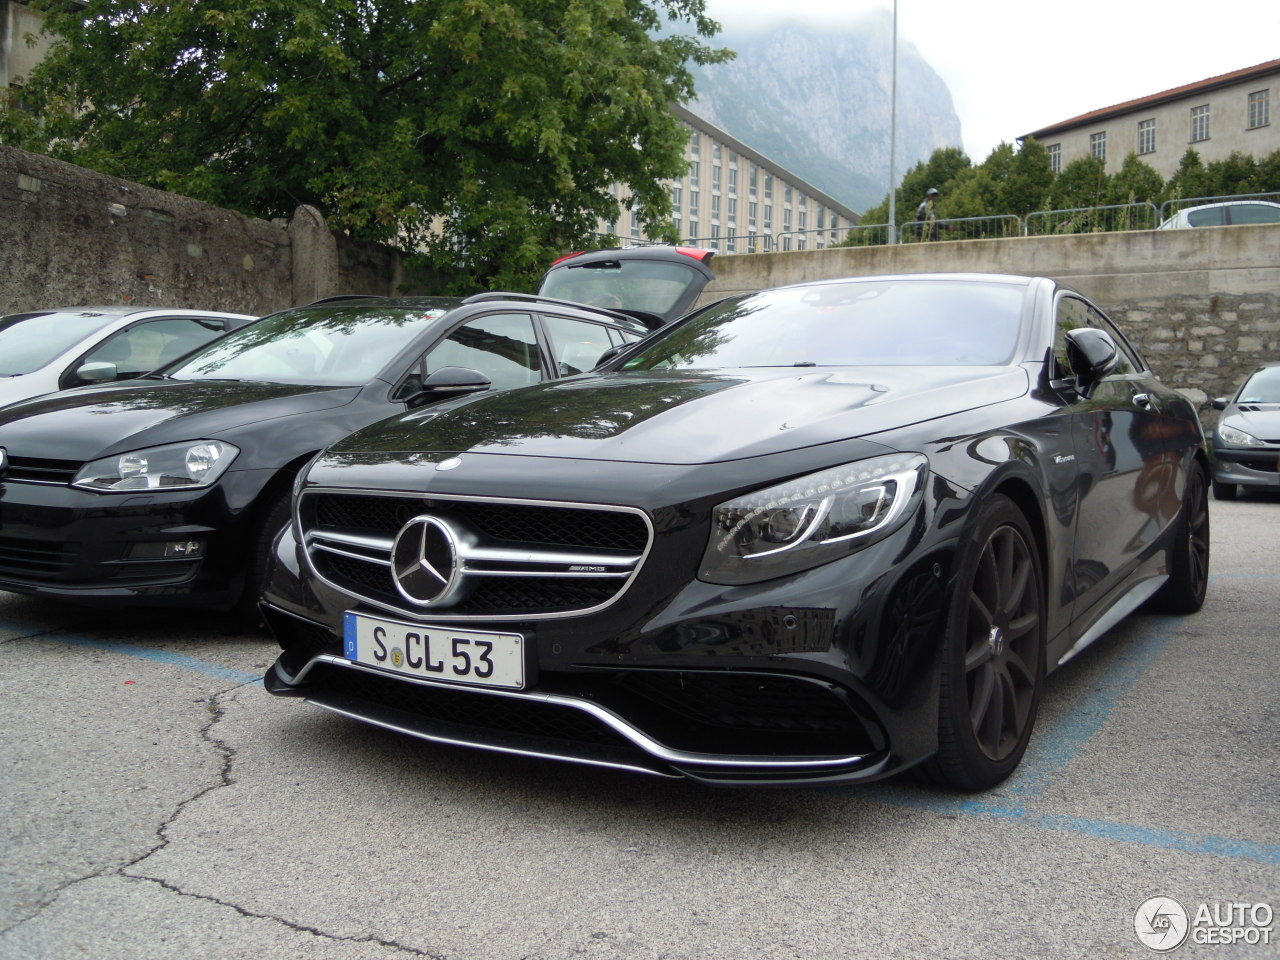 Mercedes benz s 63 amg coup c217 26 agosto 2014 for Mercedes benz s coupe 2014